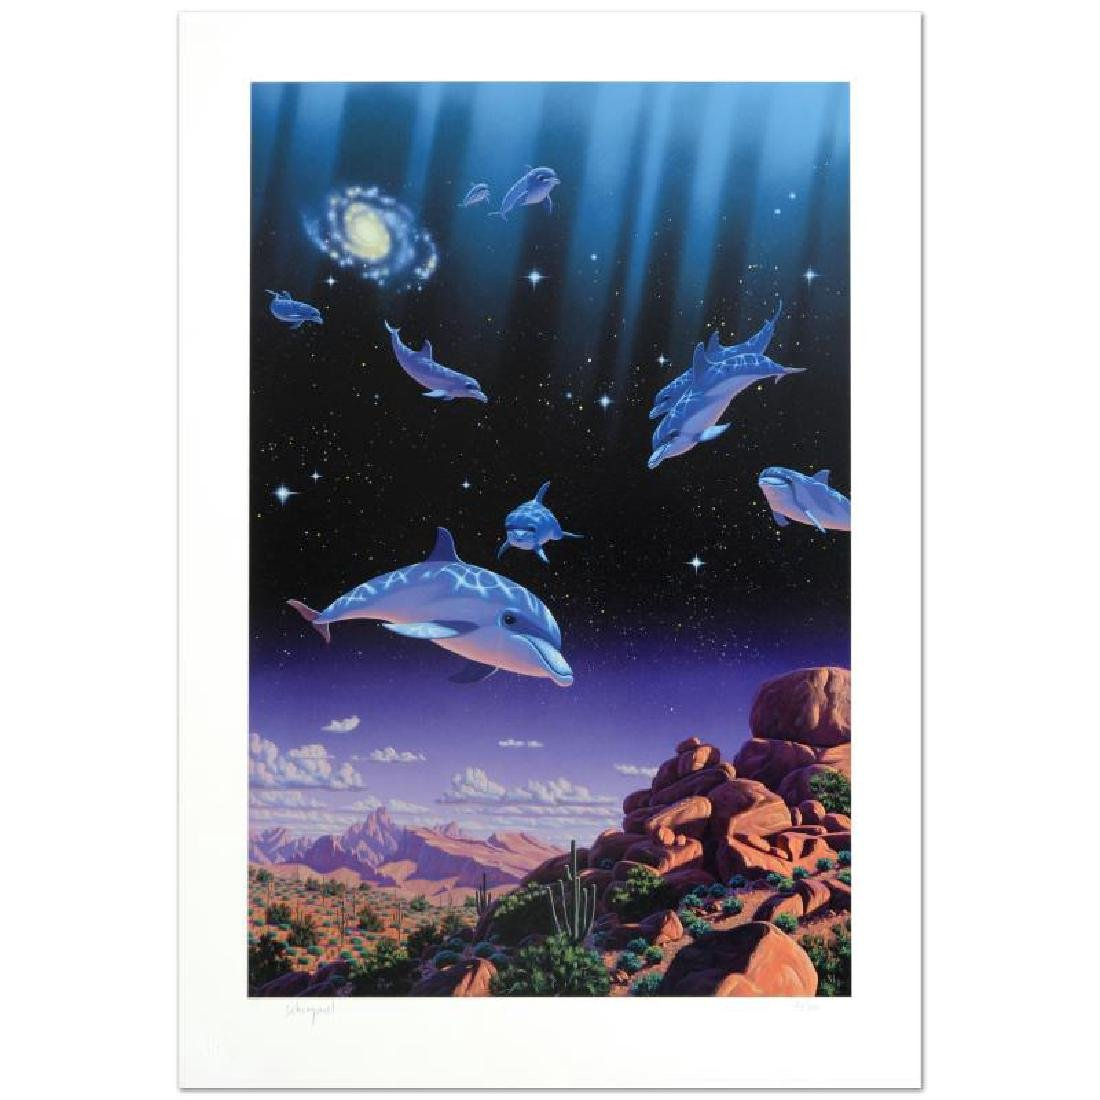 Ocean Dreams Limited Edition Giclee by William